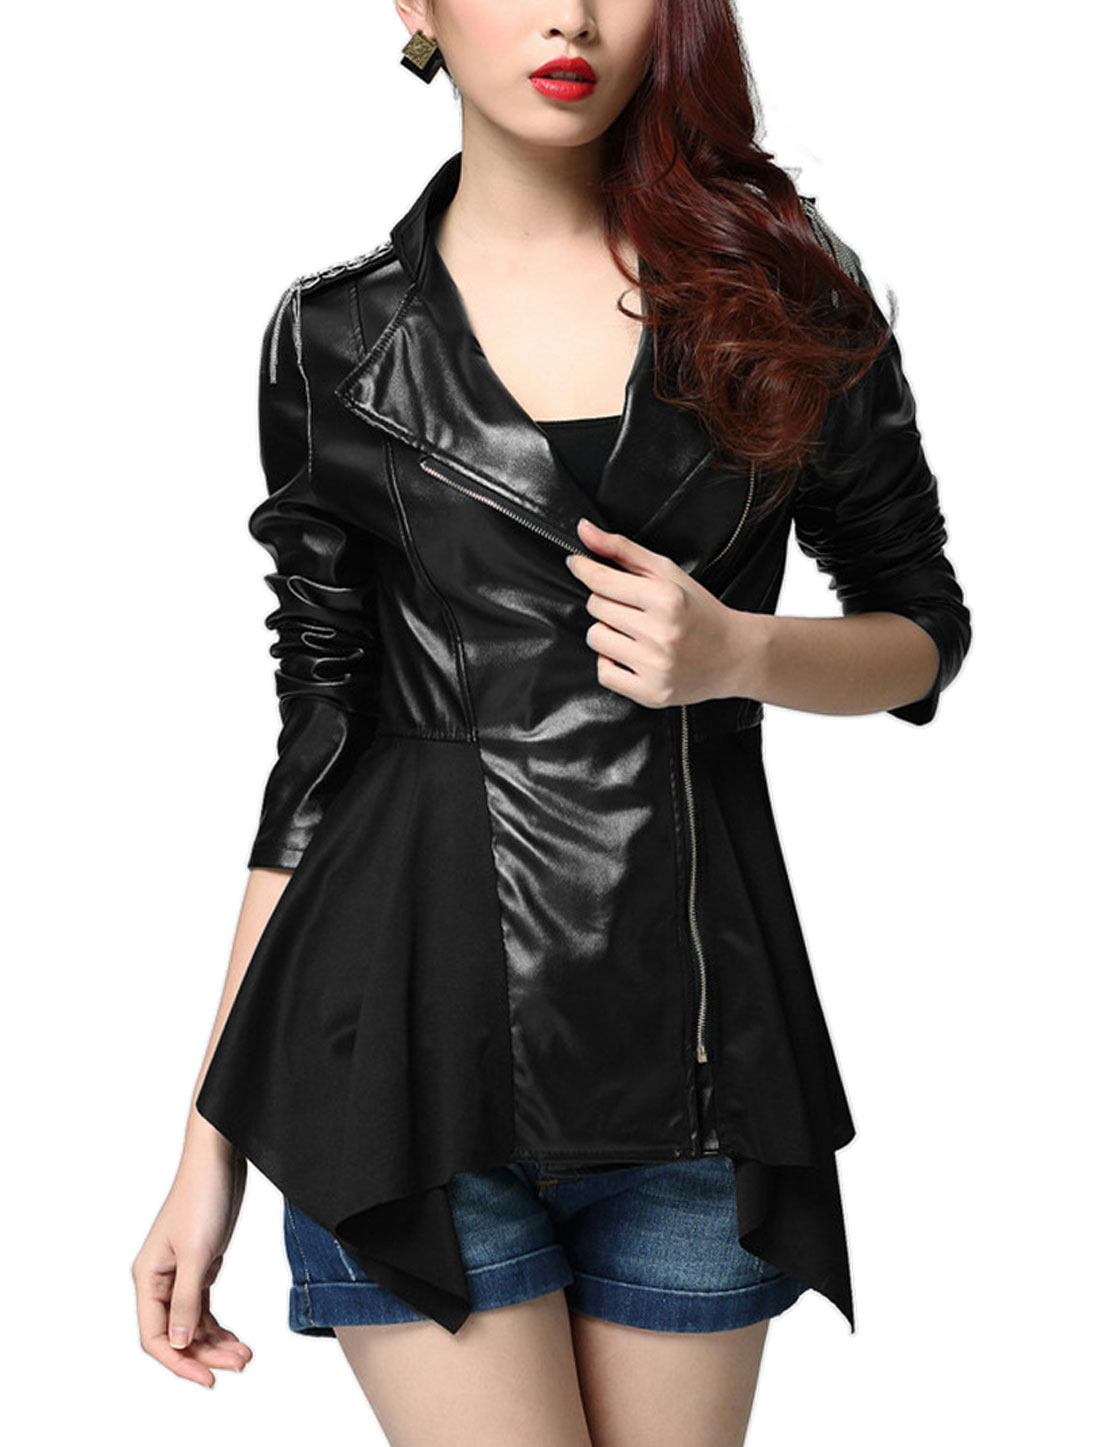 Ladies Black Long Sleeves Stand Collar Inclined Zippered Front Splice Jacket S